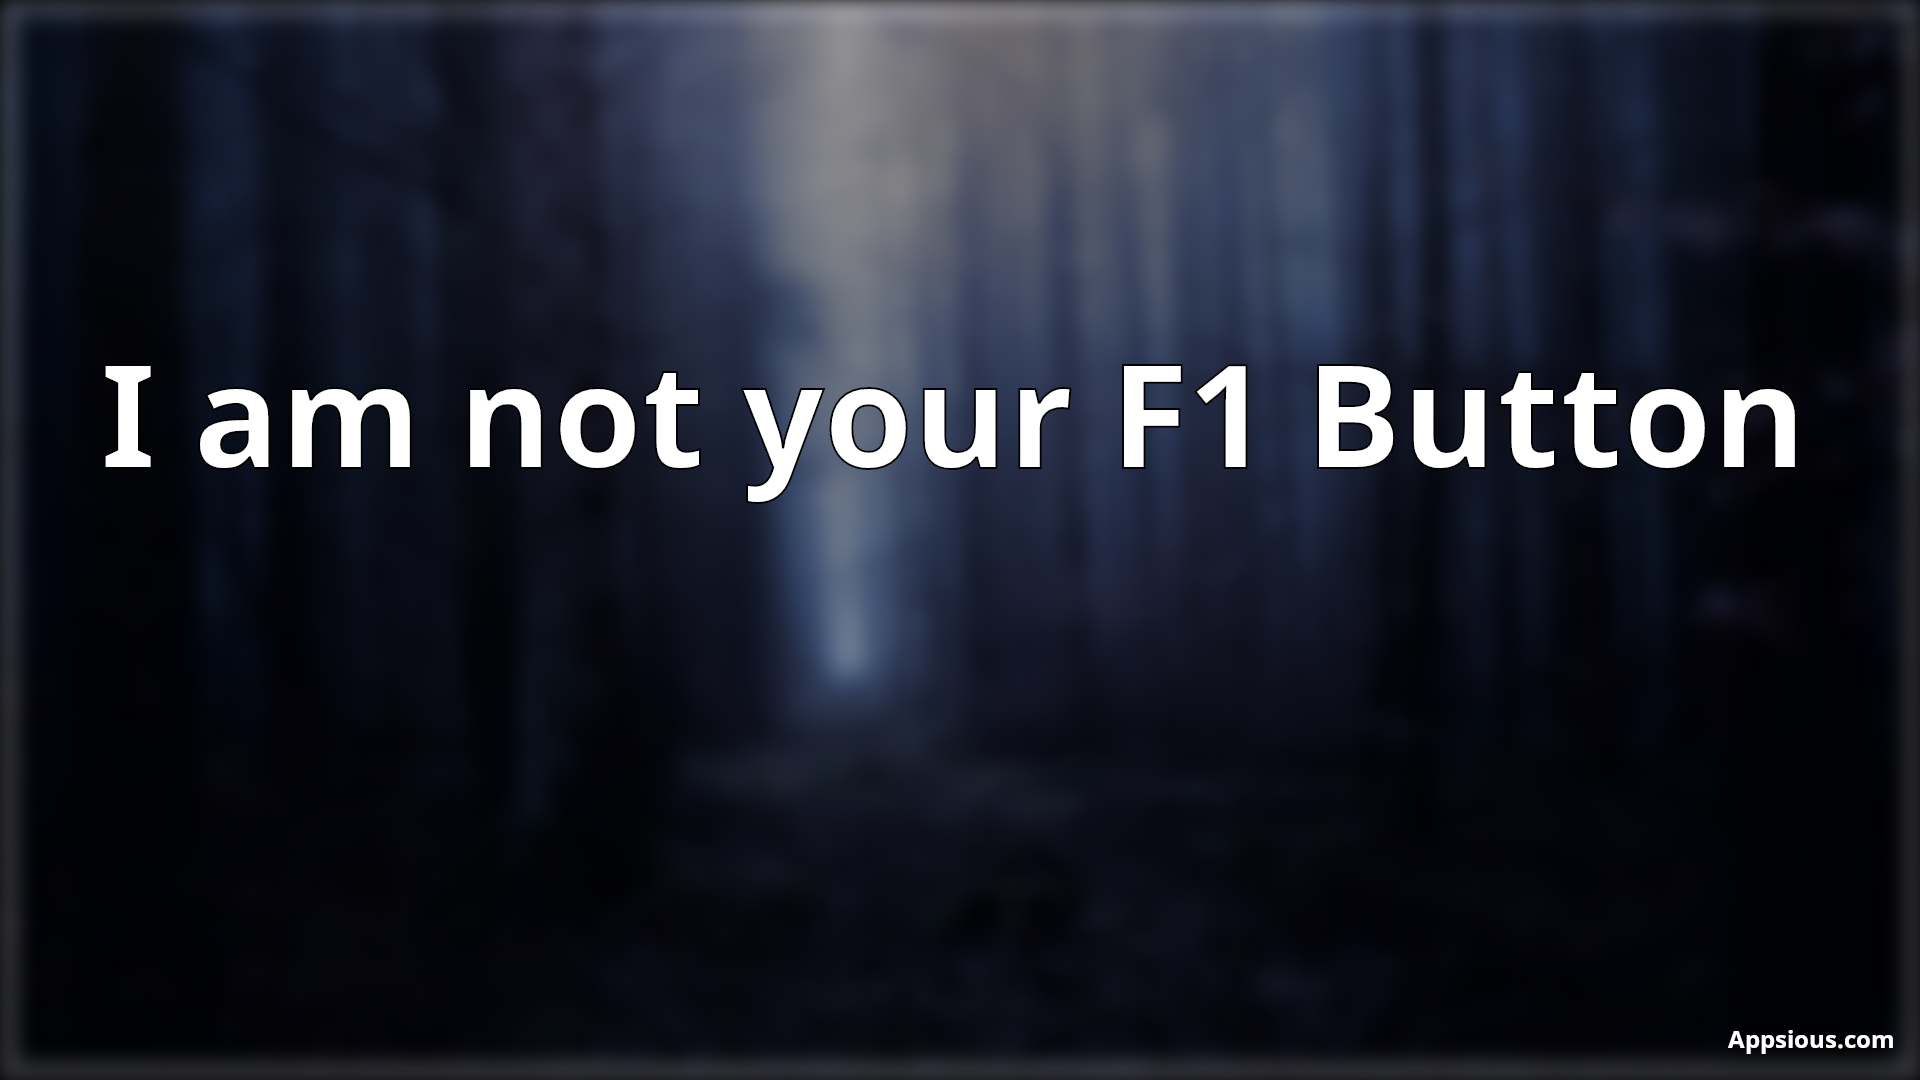 I am not your F1 Button